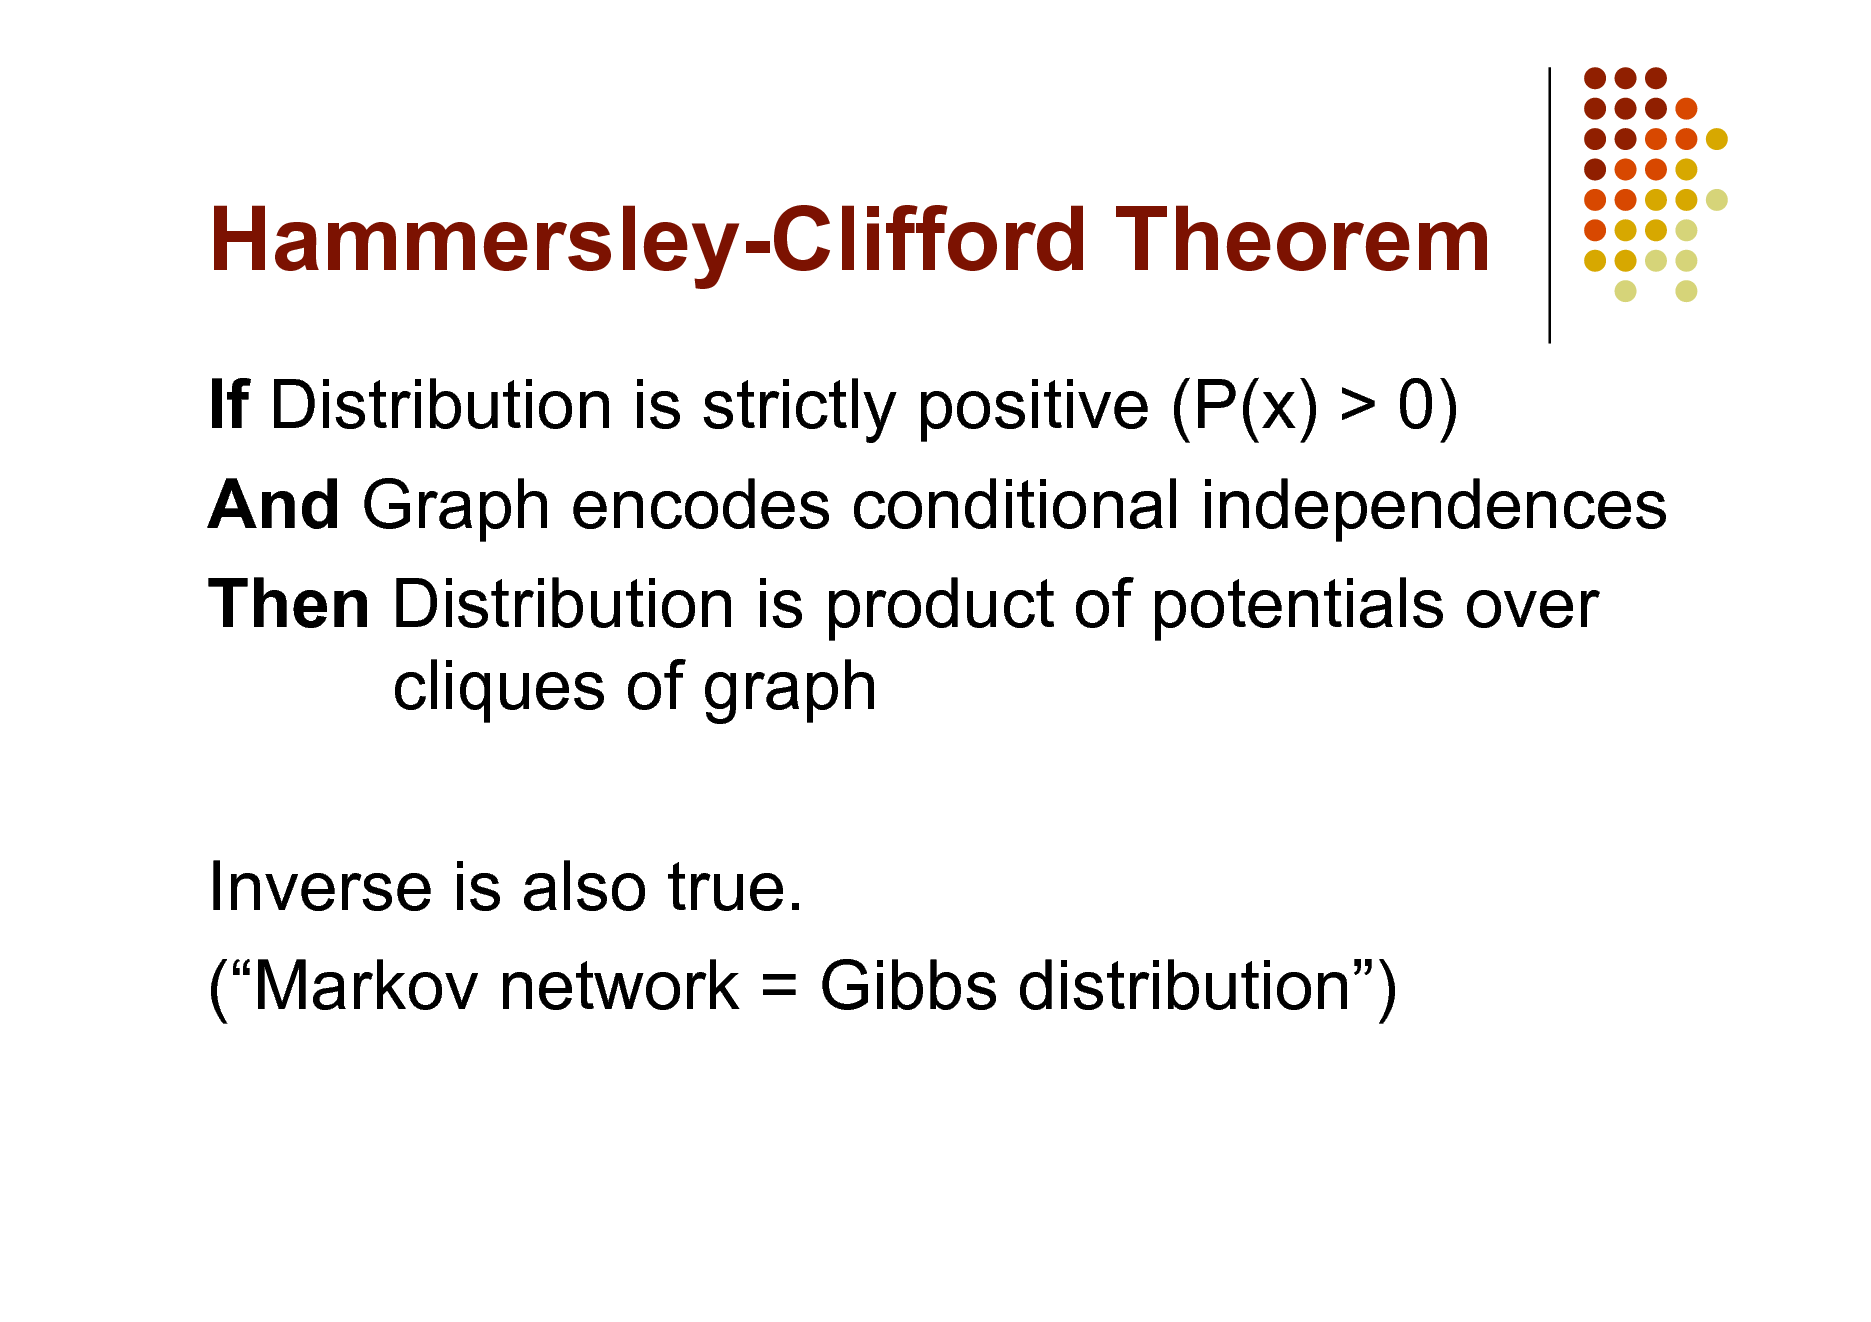 Slide: Hammersley-Clifford Theorem If Distribution is strictly positive (P(x) > 0) And Graph encodes conditional independences Then Distribution is product of potentials over cliques of graph Inverse is also true. (Markov network = Gibbs distribution)